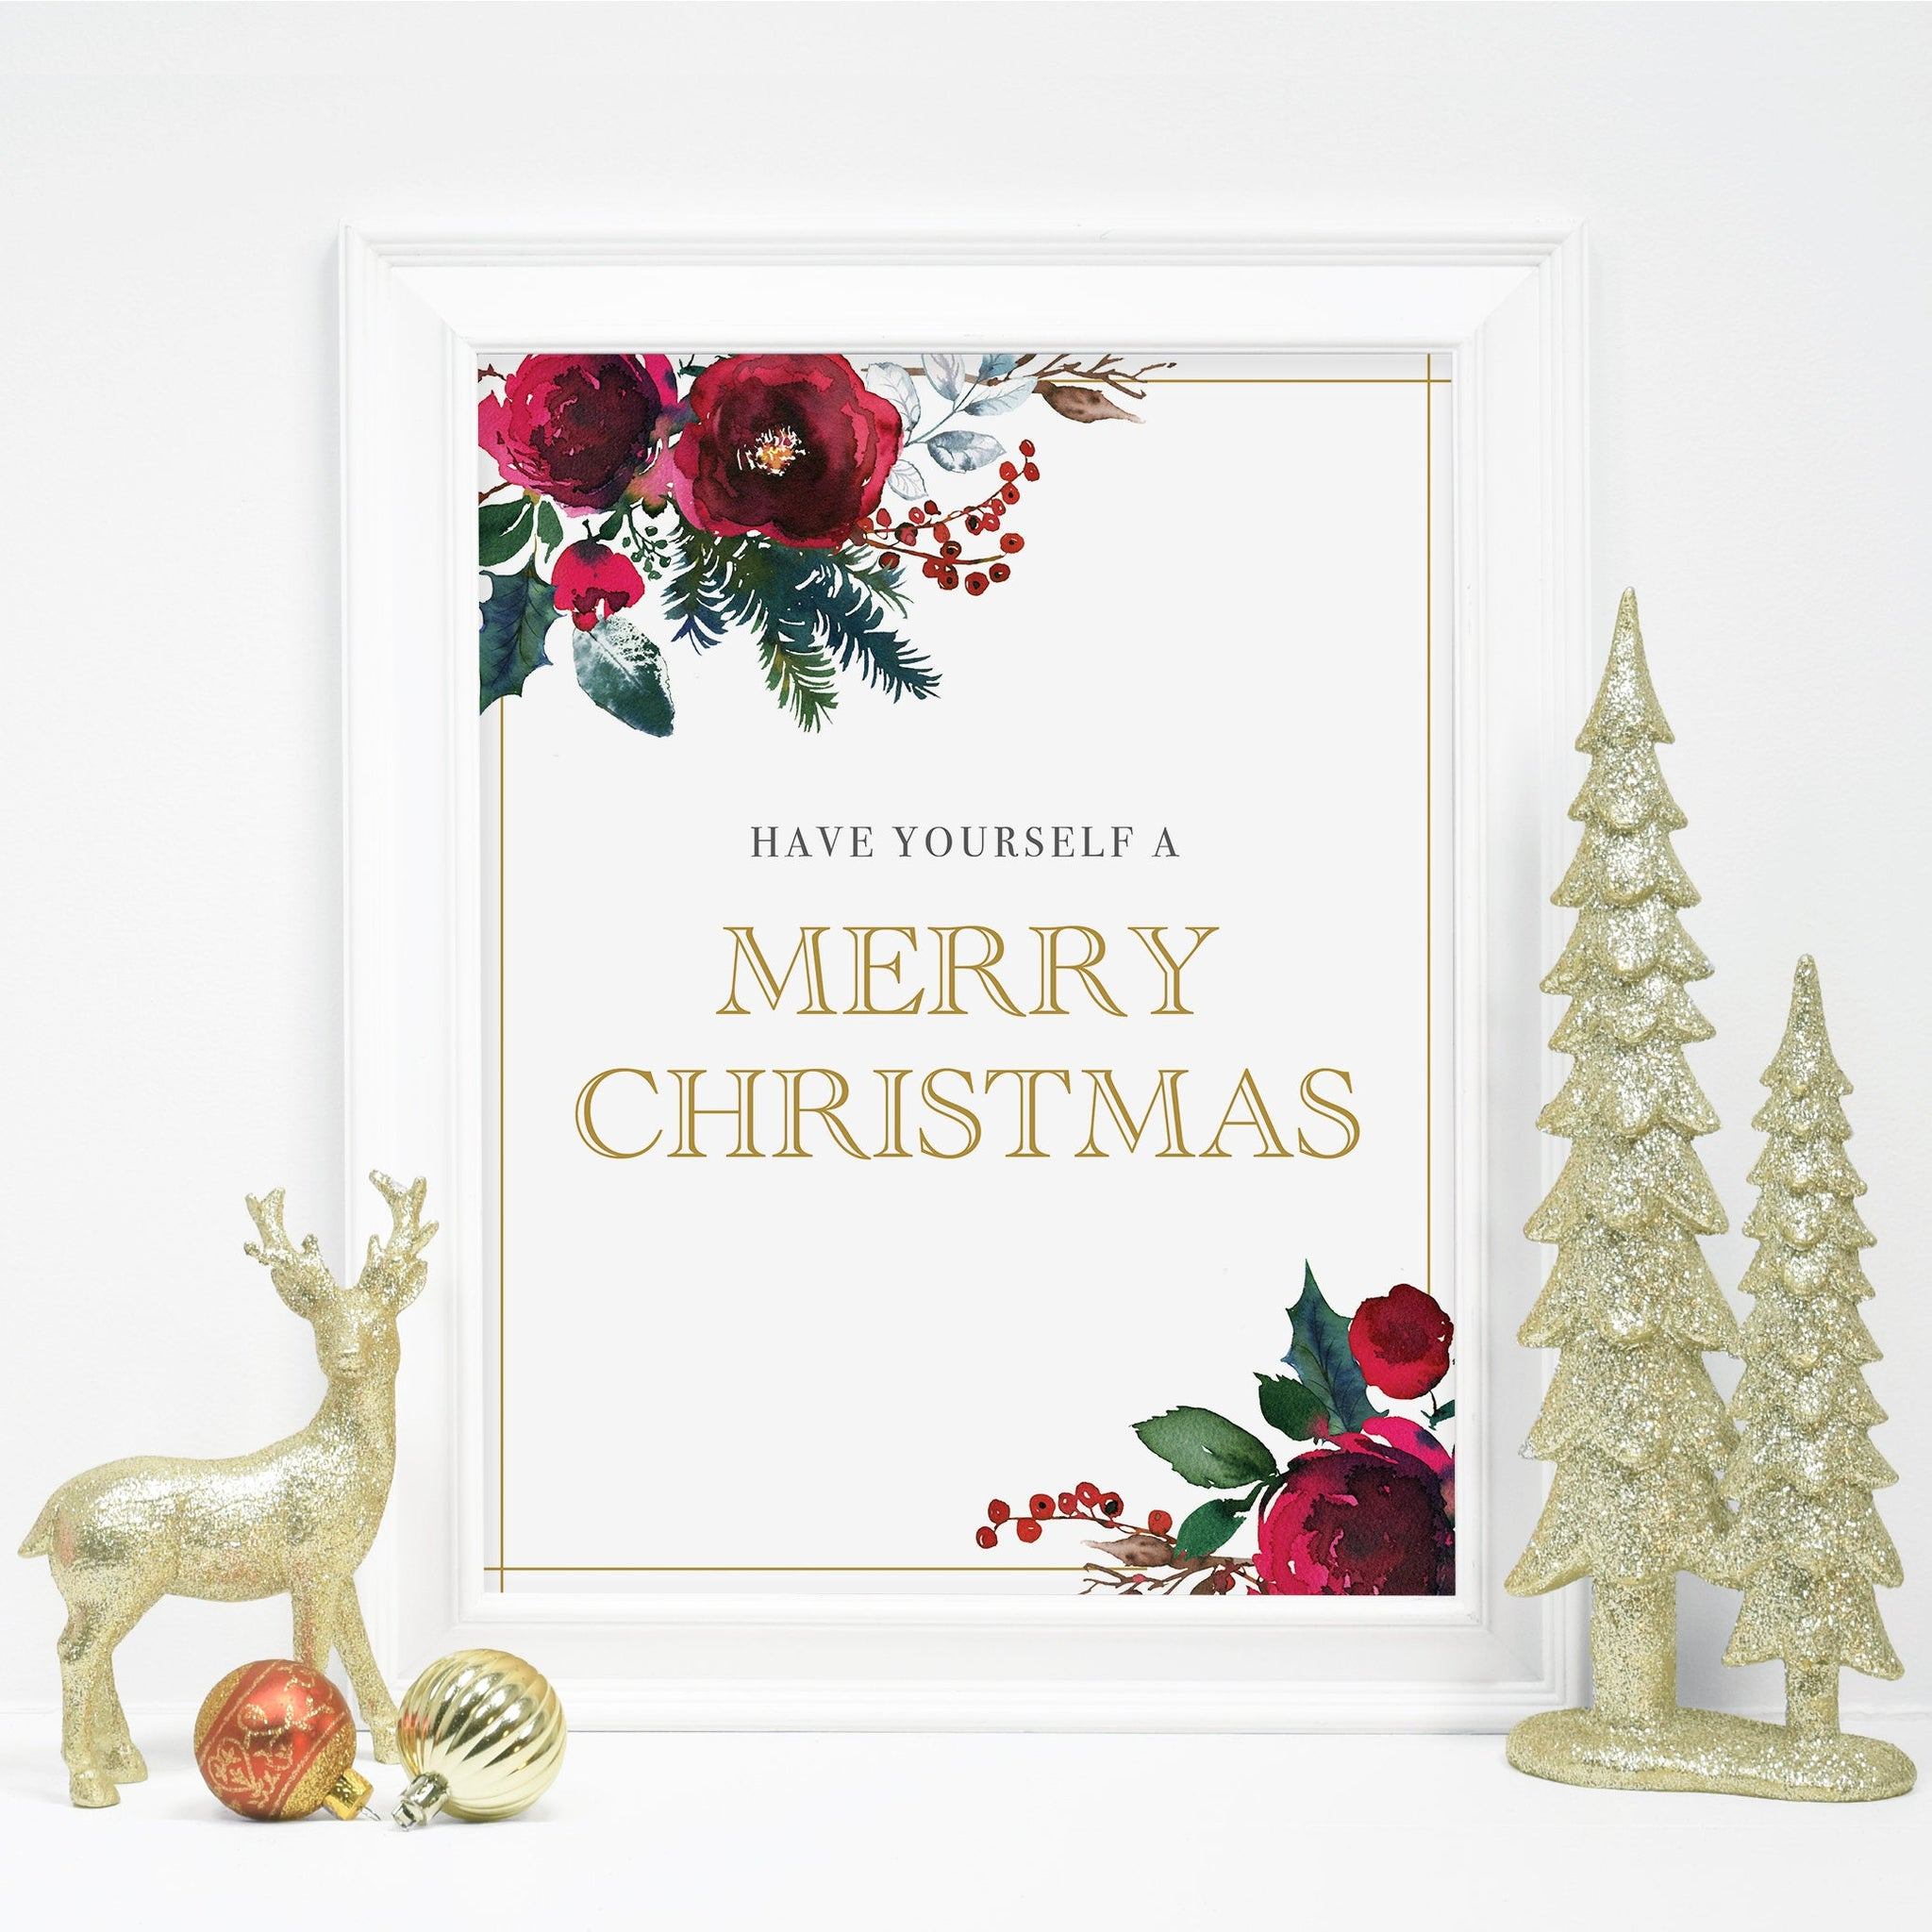 Merry Christmas Sign Printable, Holiday Decor, Christmas Party Printable Decorations, Holiday Party Decor, INSTANT DOWNLOAD - CG100 - @PlumPolkaDot